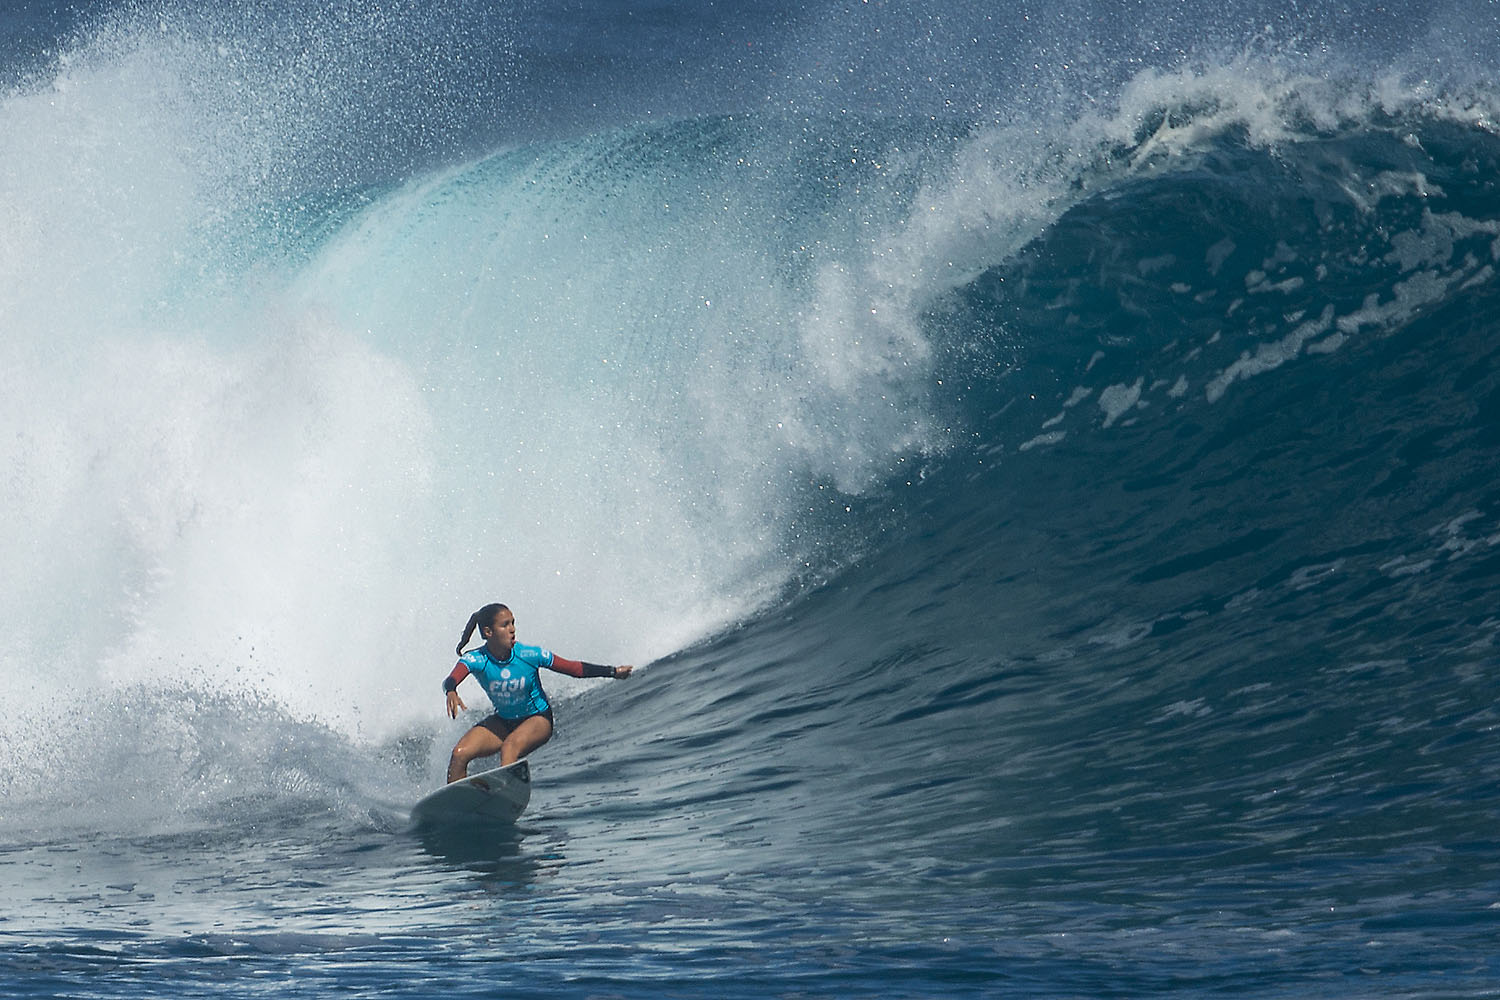 Following the third round, Fitzgibbons would win her heat in each of the next few rounds, finally taking the crown in a one-on-one matchup with Stephanie Gilmore.